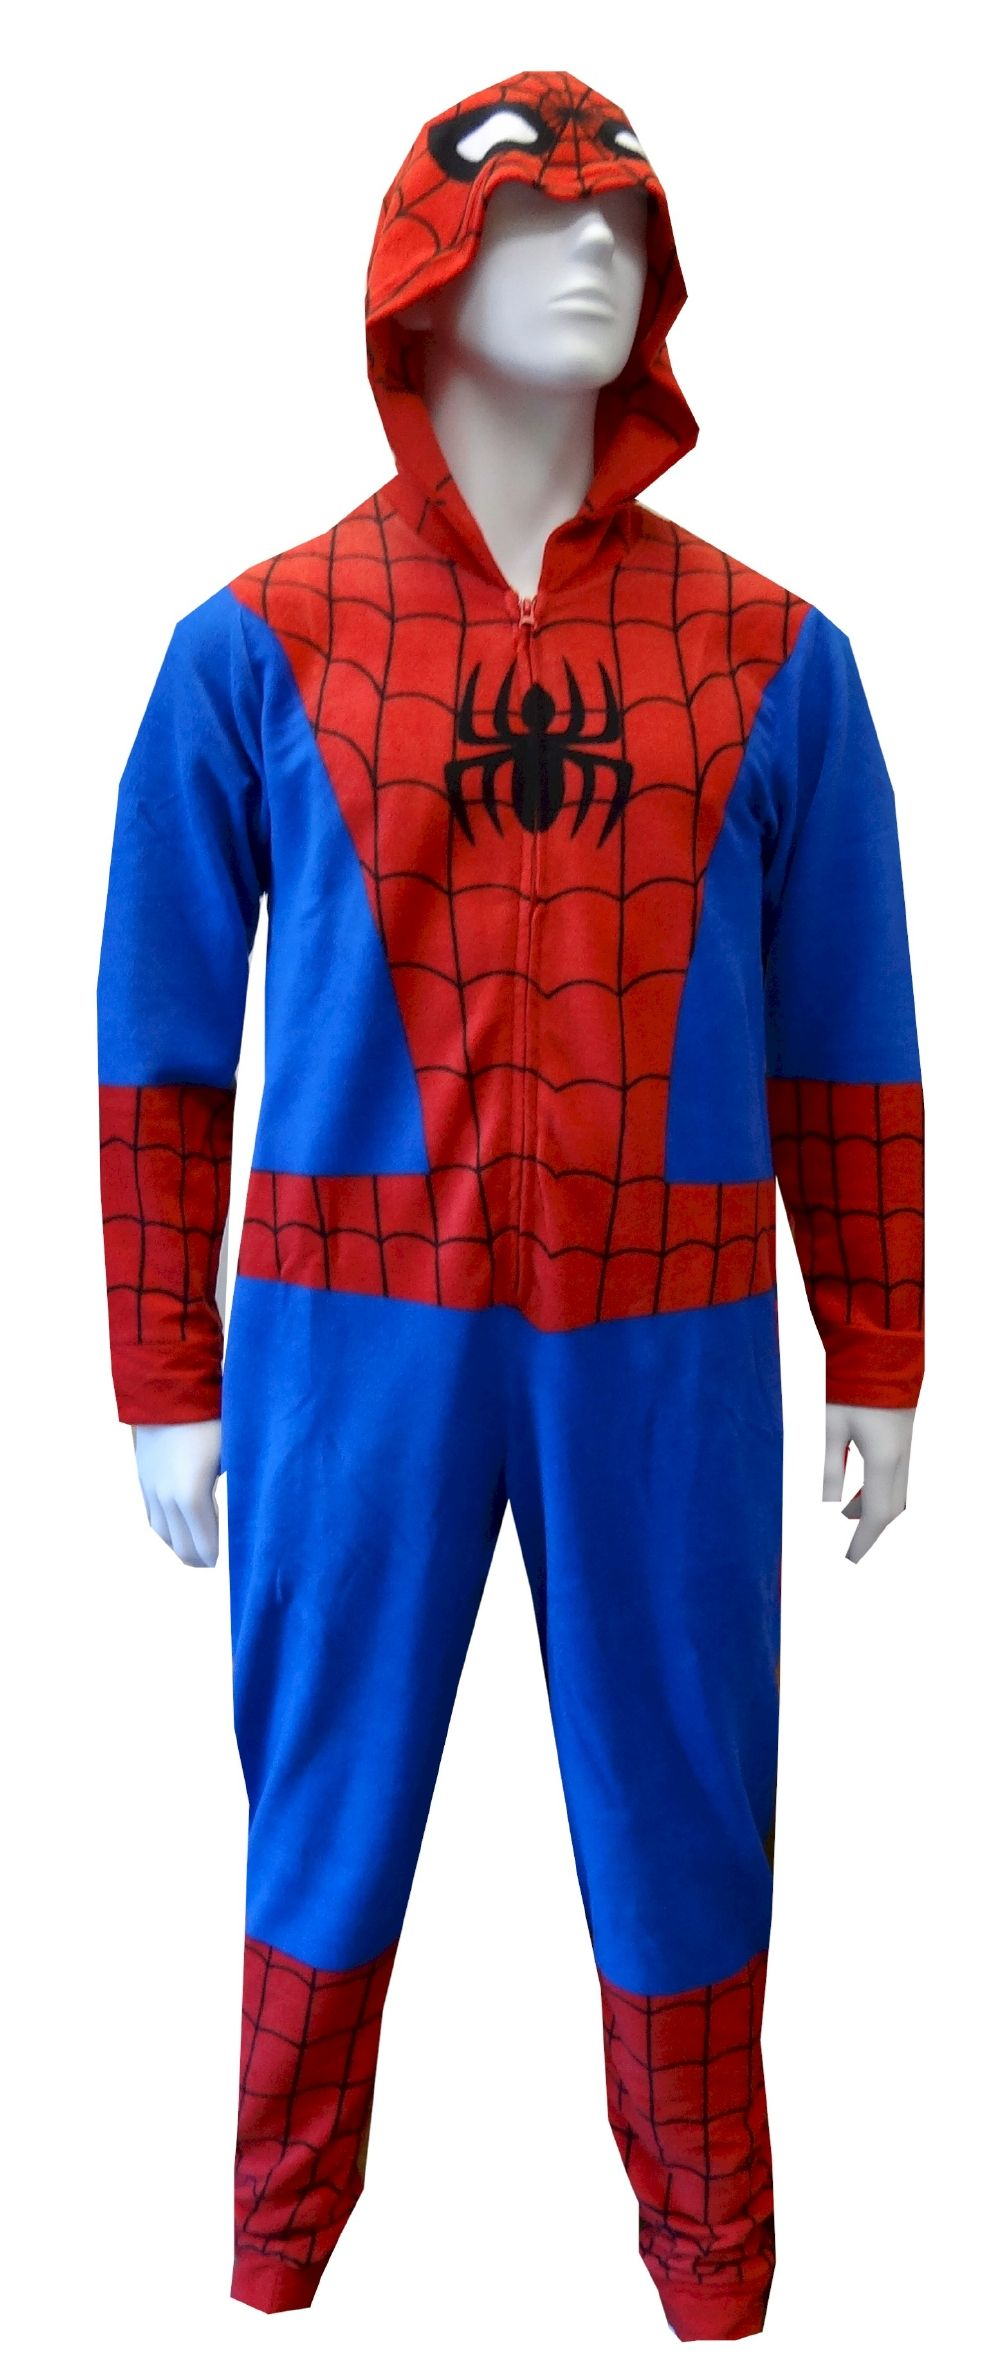 e636f6316b25 Spiderman   Spidergirl Hooded Fleece Onesie Pajama Conquer the evil-doers  in the house in these super fun pajamas! These pajamas for adults feature  the ...